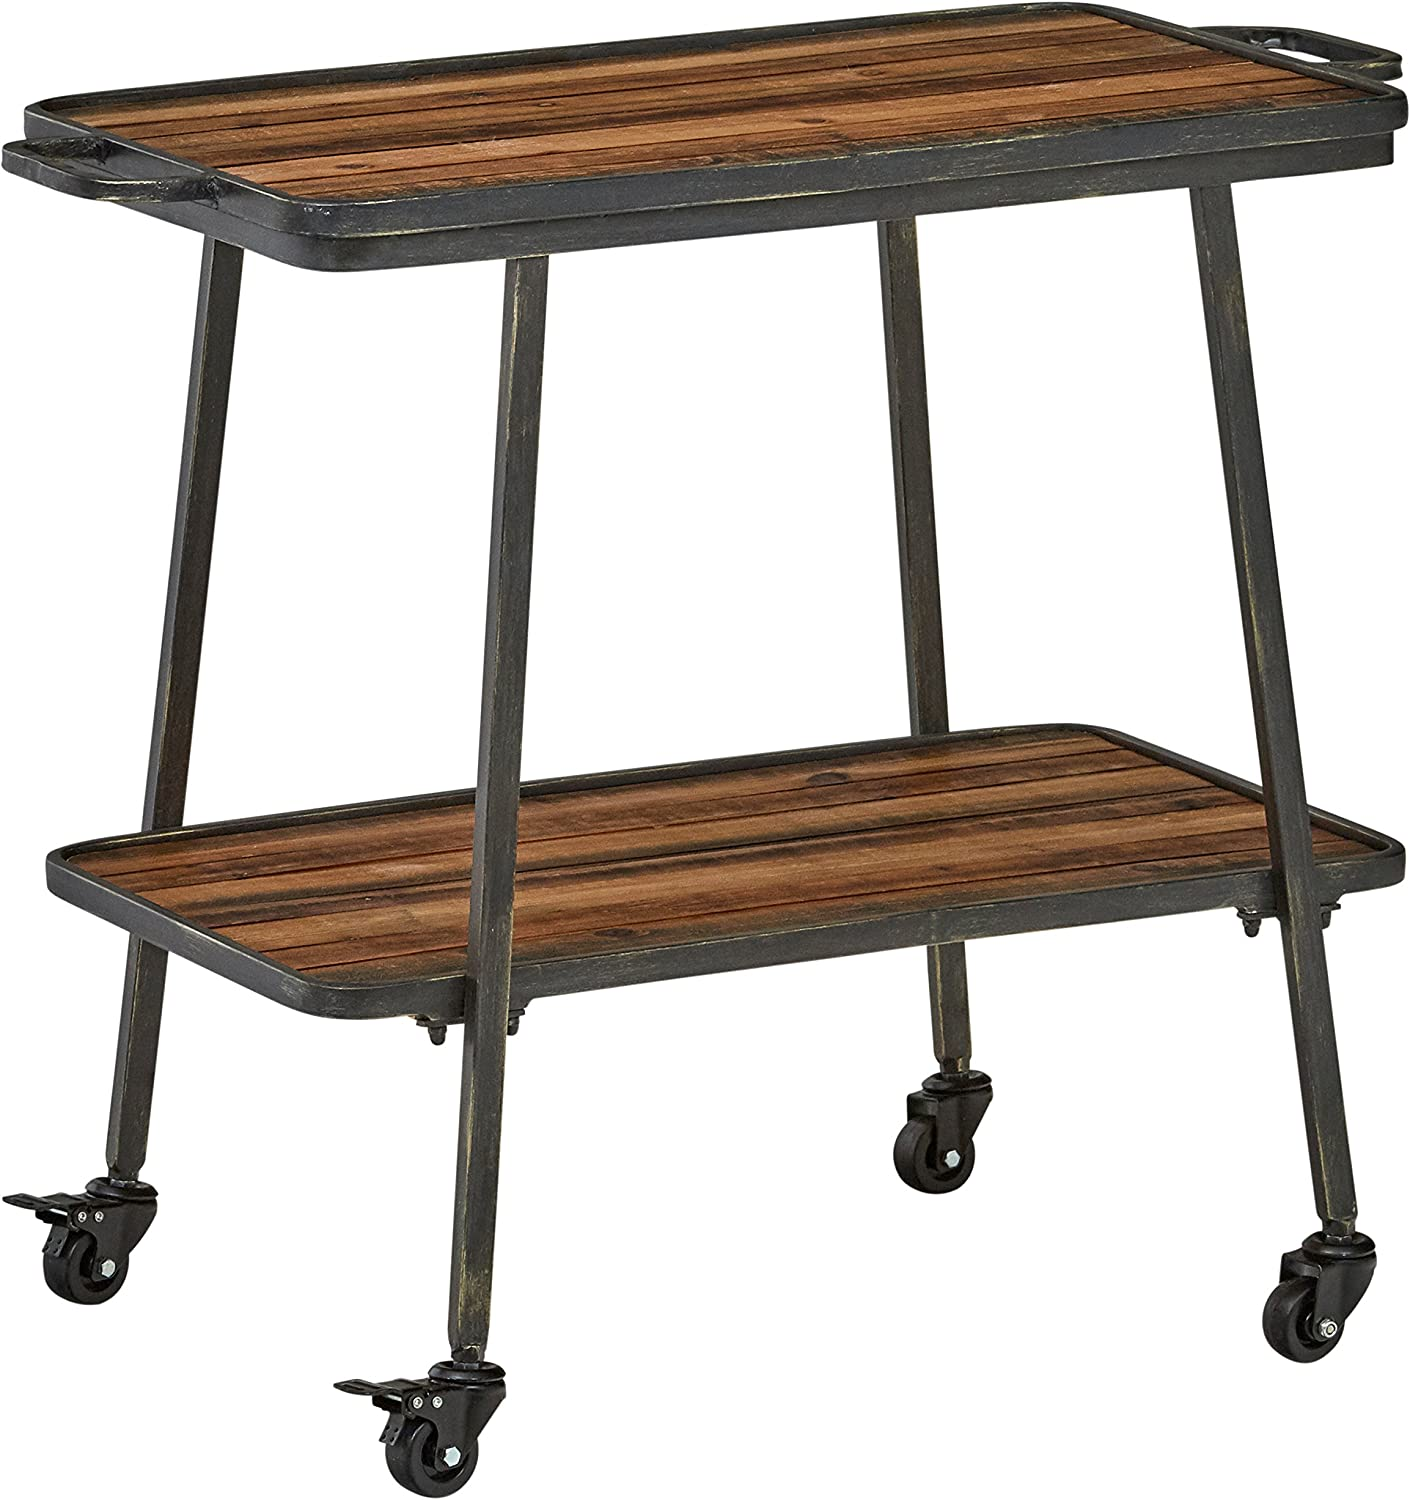 Rivet 2-Tiered Industrial Kitchen Rolling Bar Cart with Wheels, 32.3 W, Natural, Black